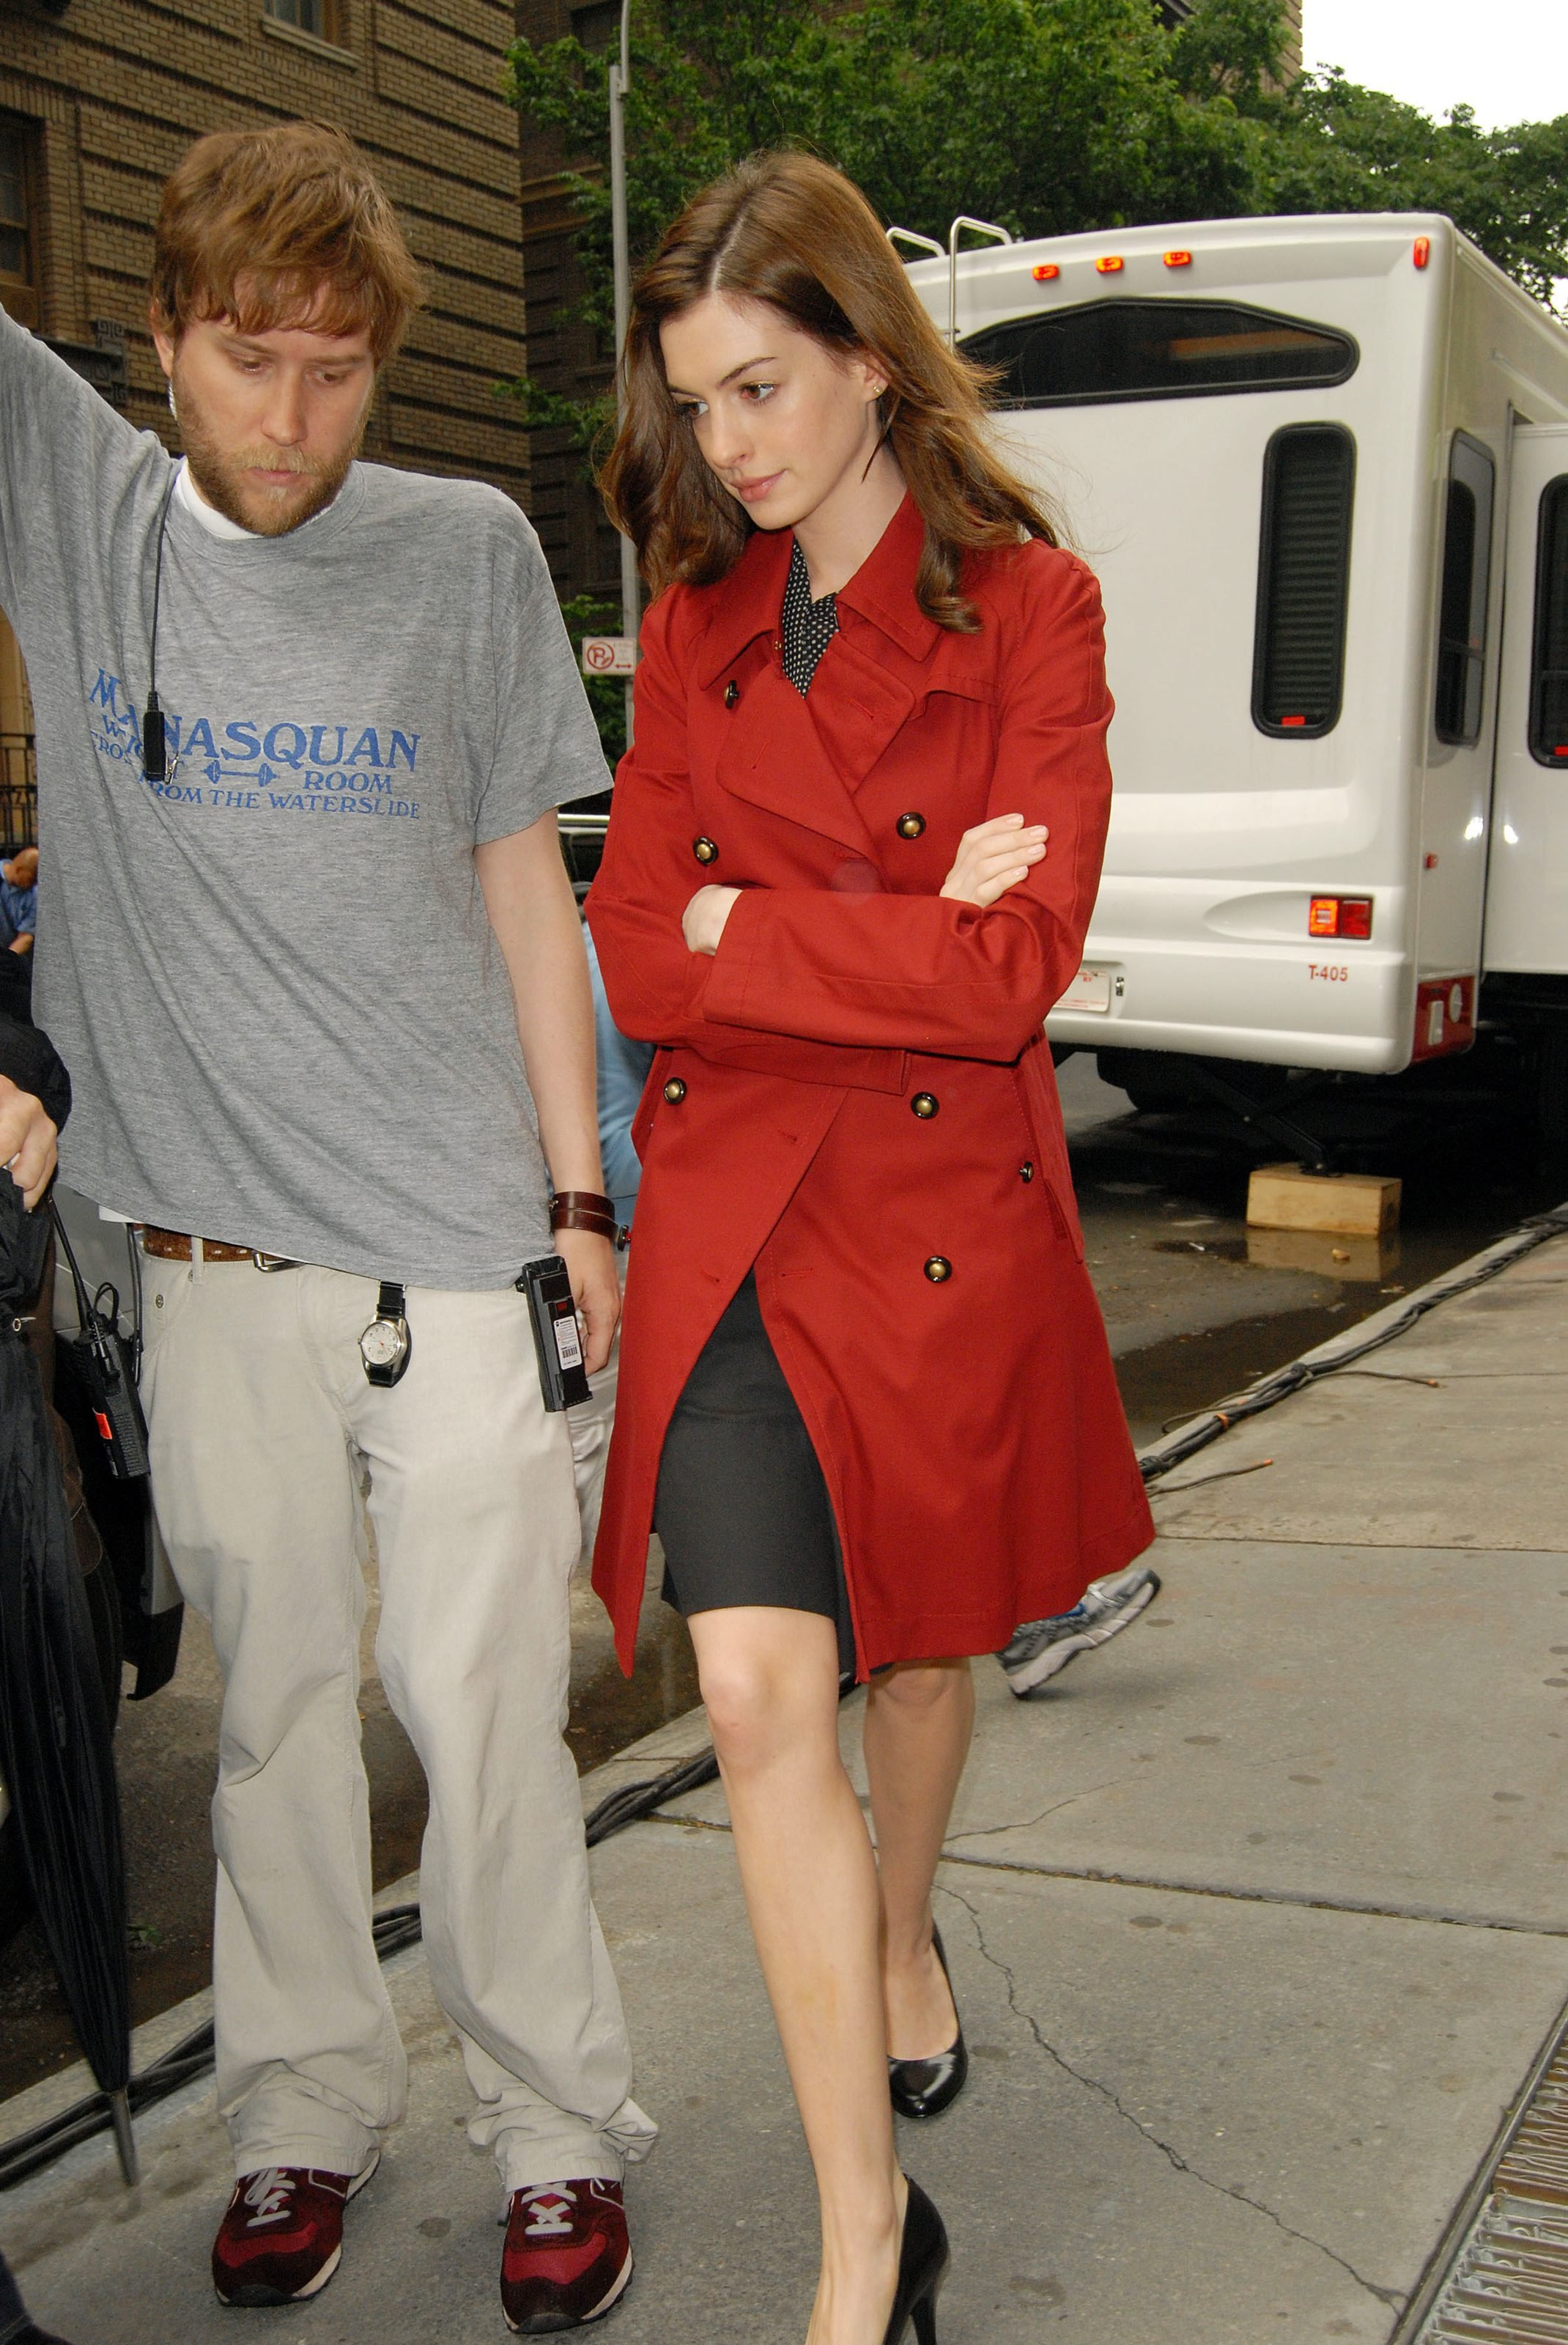 55673_Anne_Hathaway_2008-05-27_-_on_the_set_of_Bride_Wars_in_NY_122_681lo.jpg